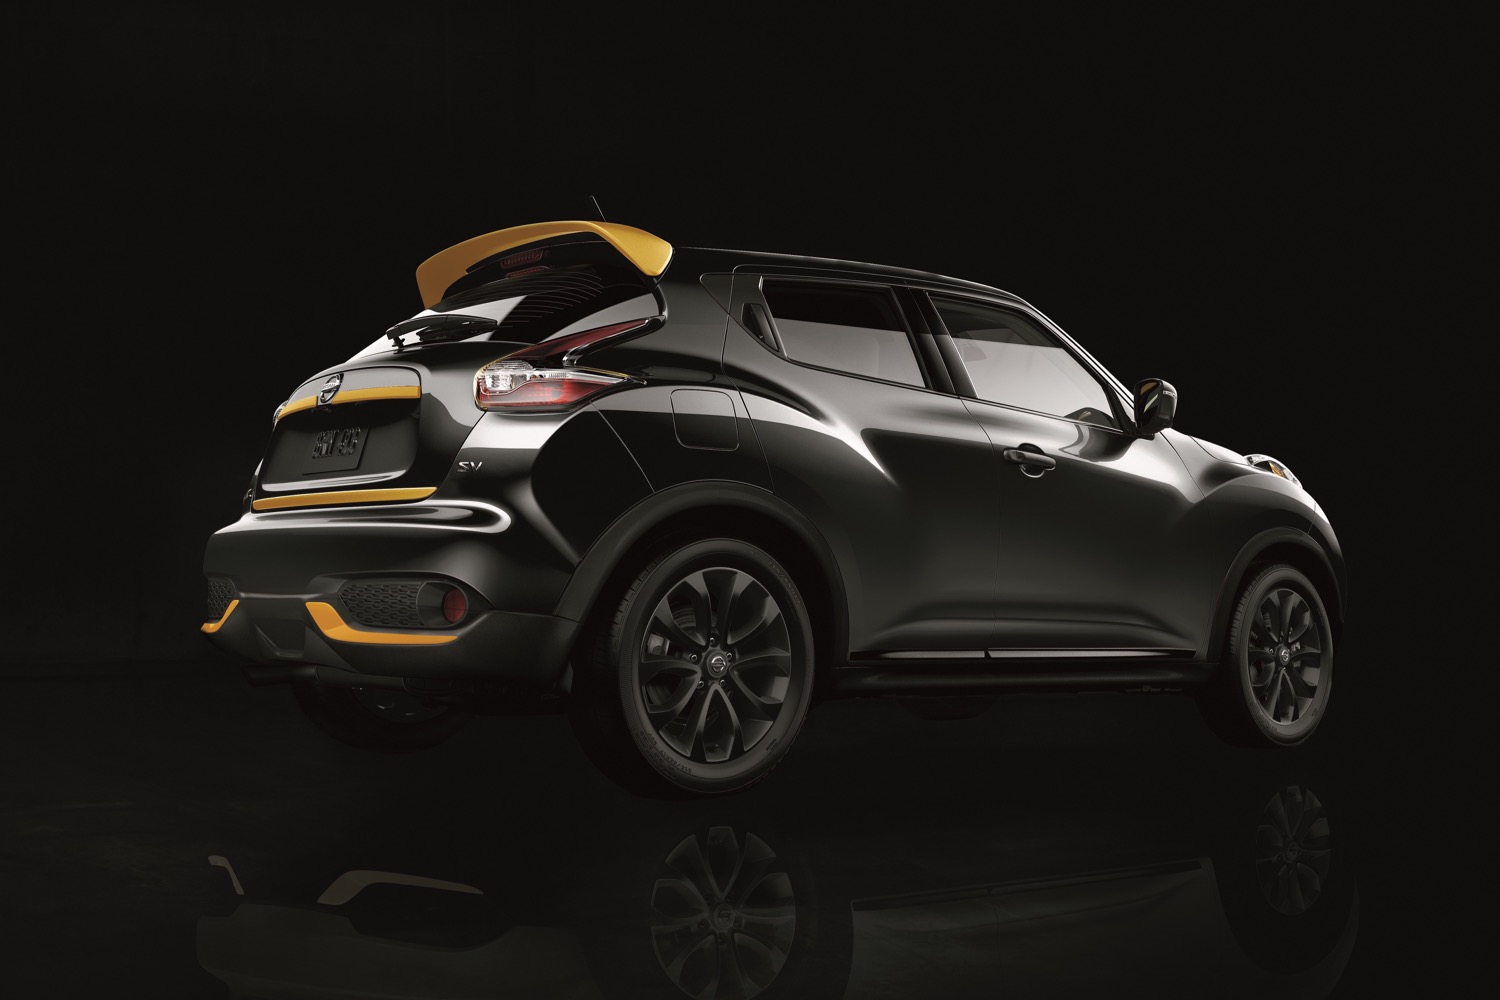 nissan s 2016 juke stinger edition is a turbocharged bee. Black Bedroom Furniture Sets. Home Design Ideas